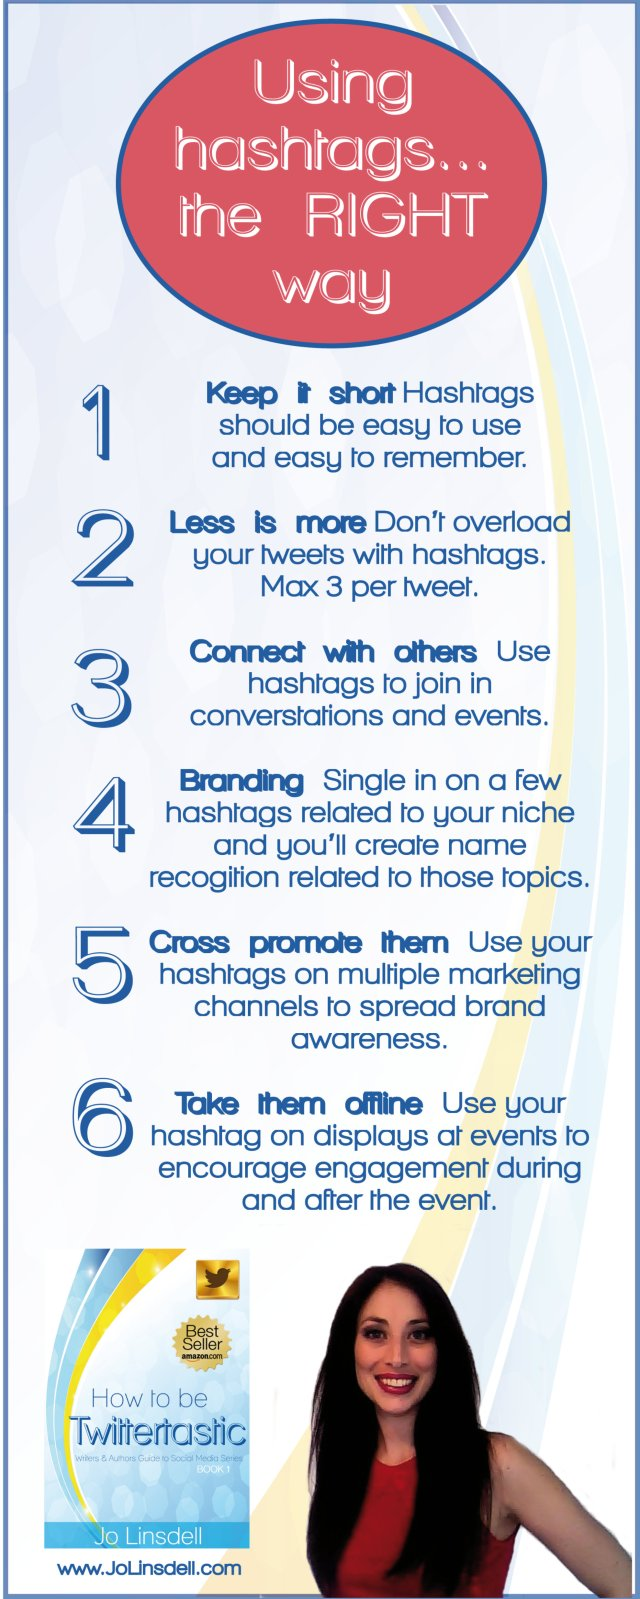 using hashtags the right way infographic2